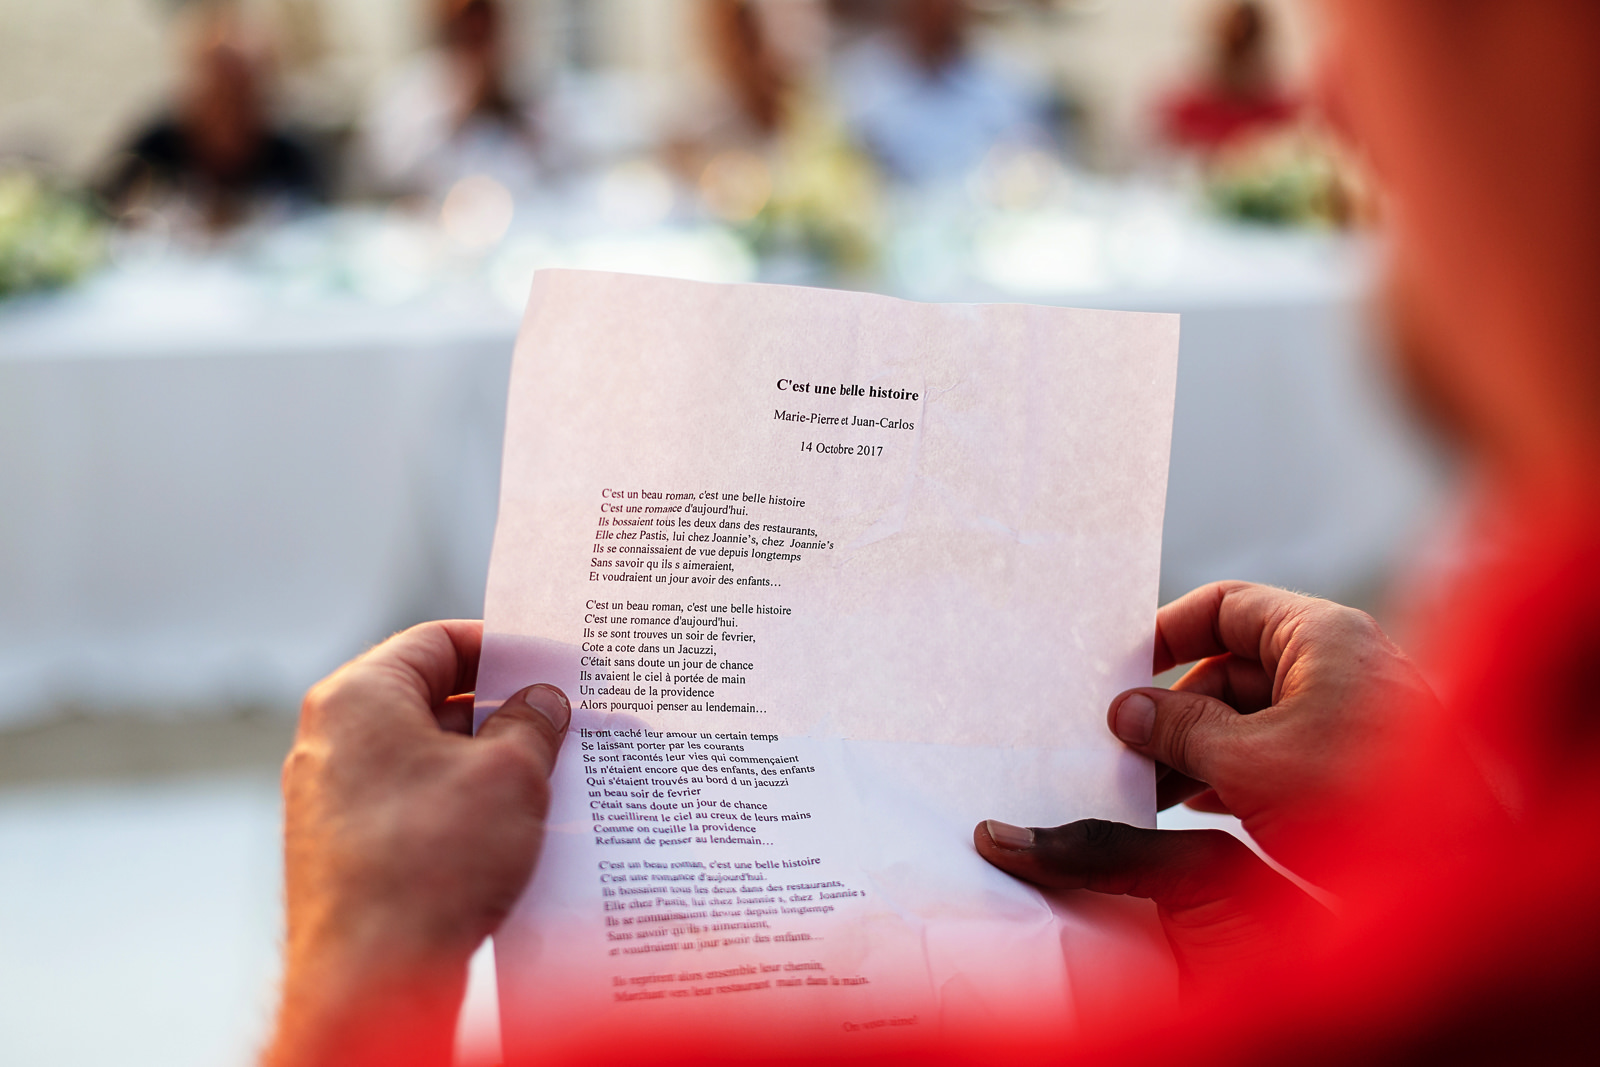 Lyrics of a french song printed and in the hand of a wedding guest